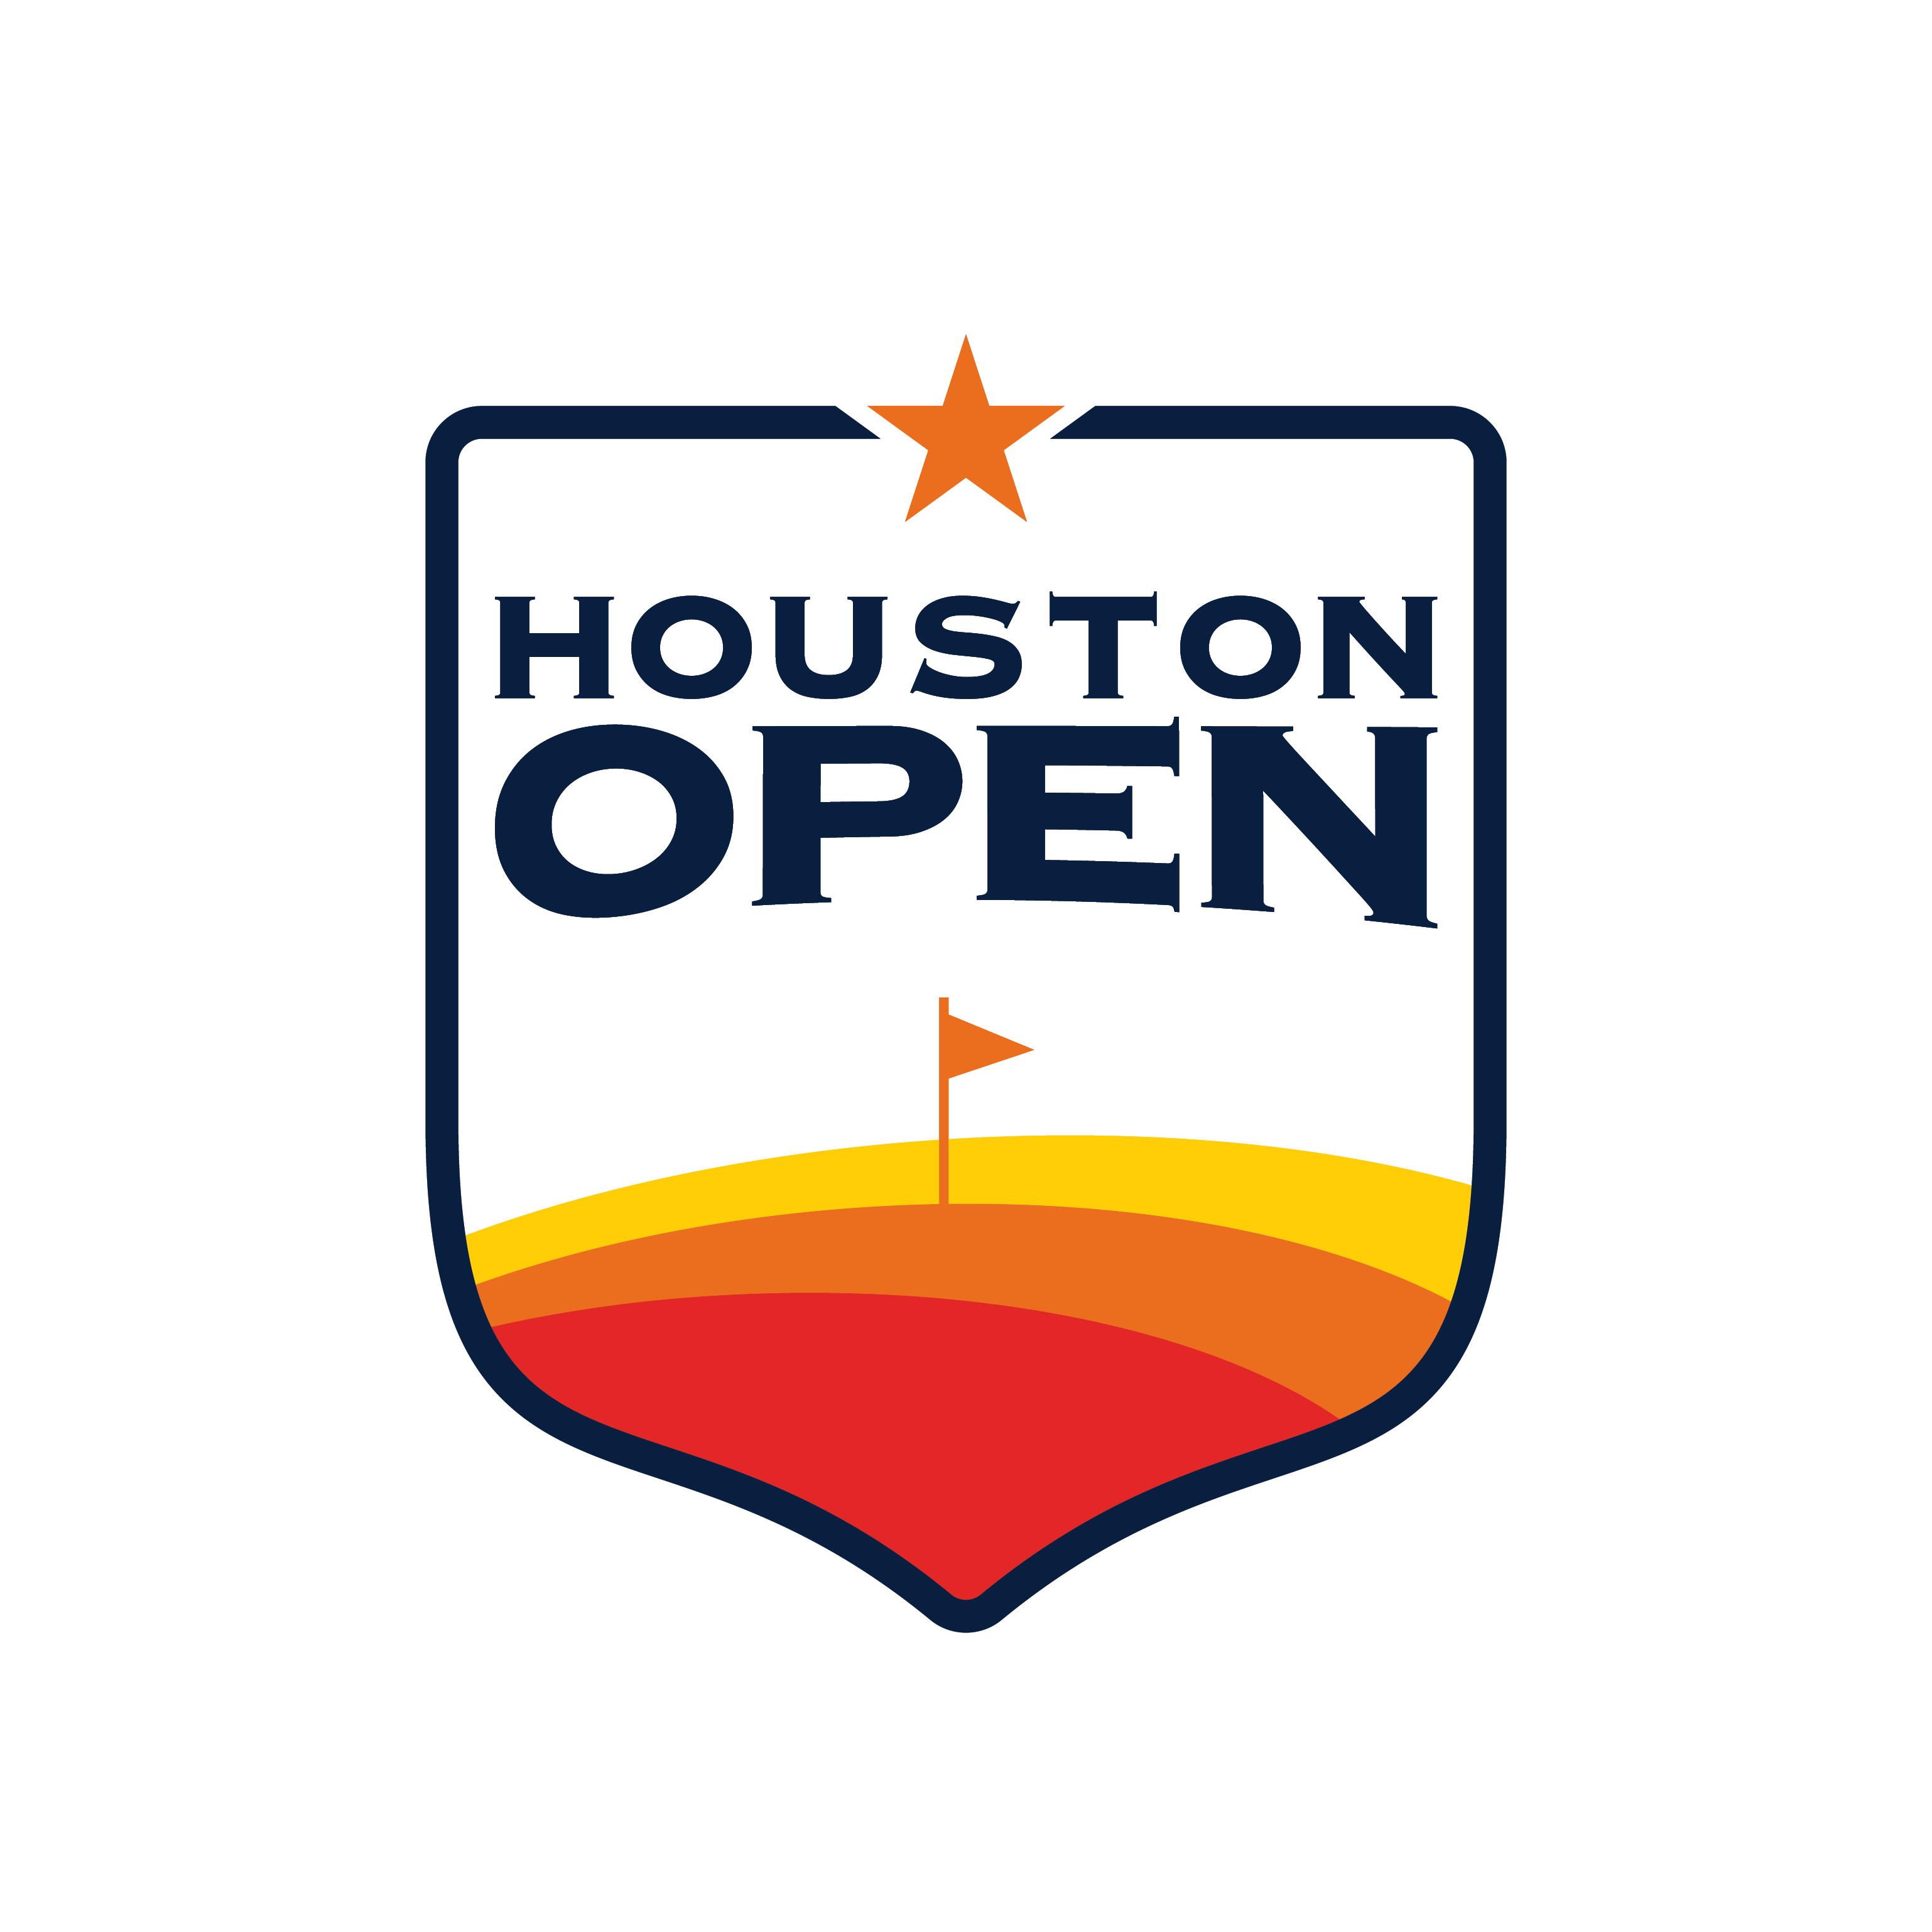 Image for THURSDAY - Houston Open Tickets